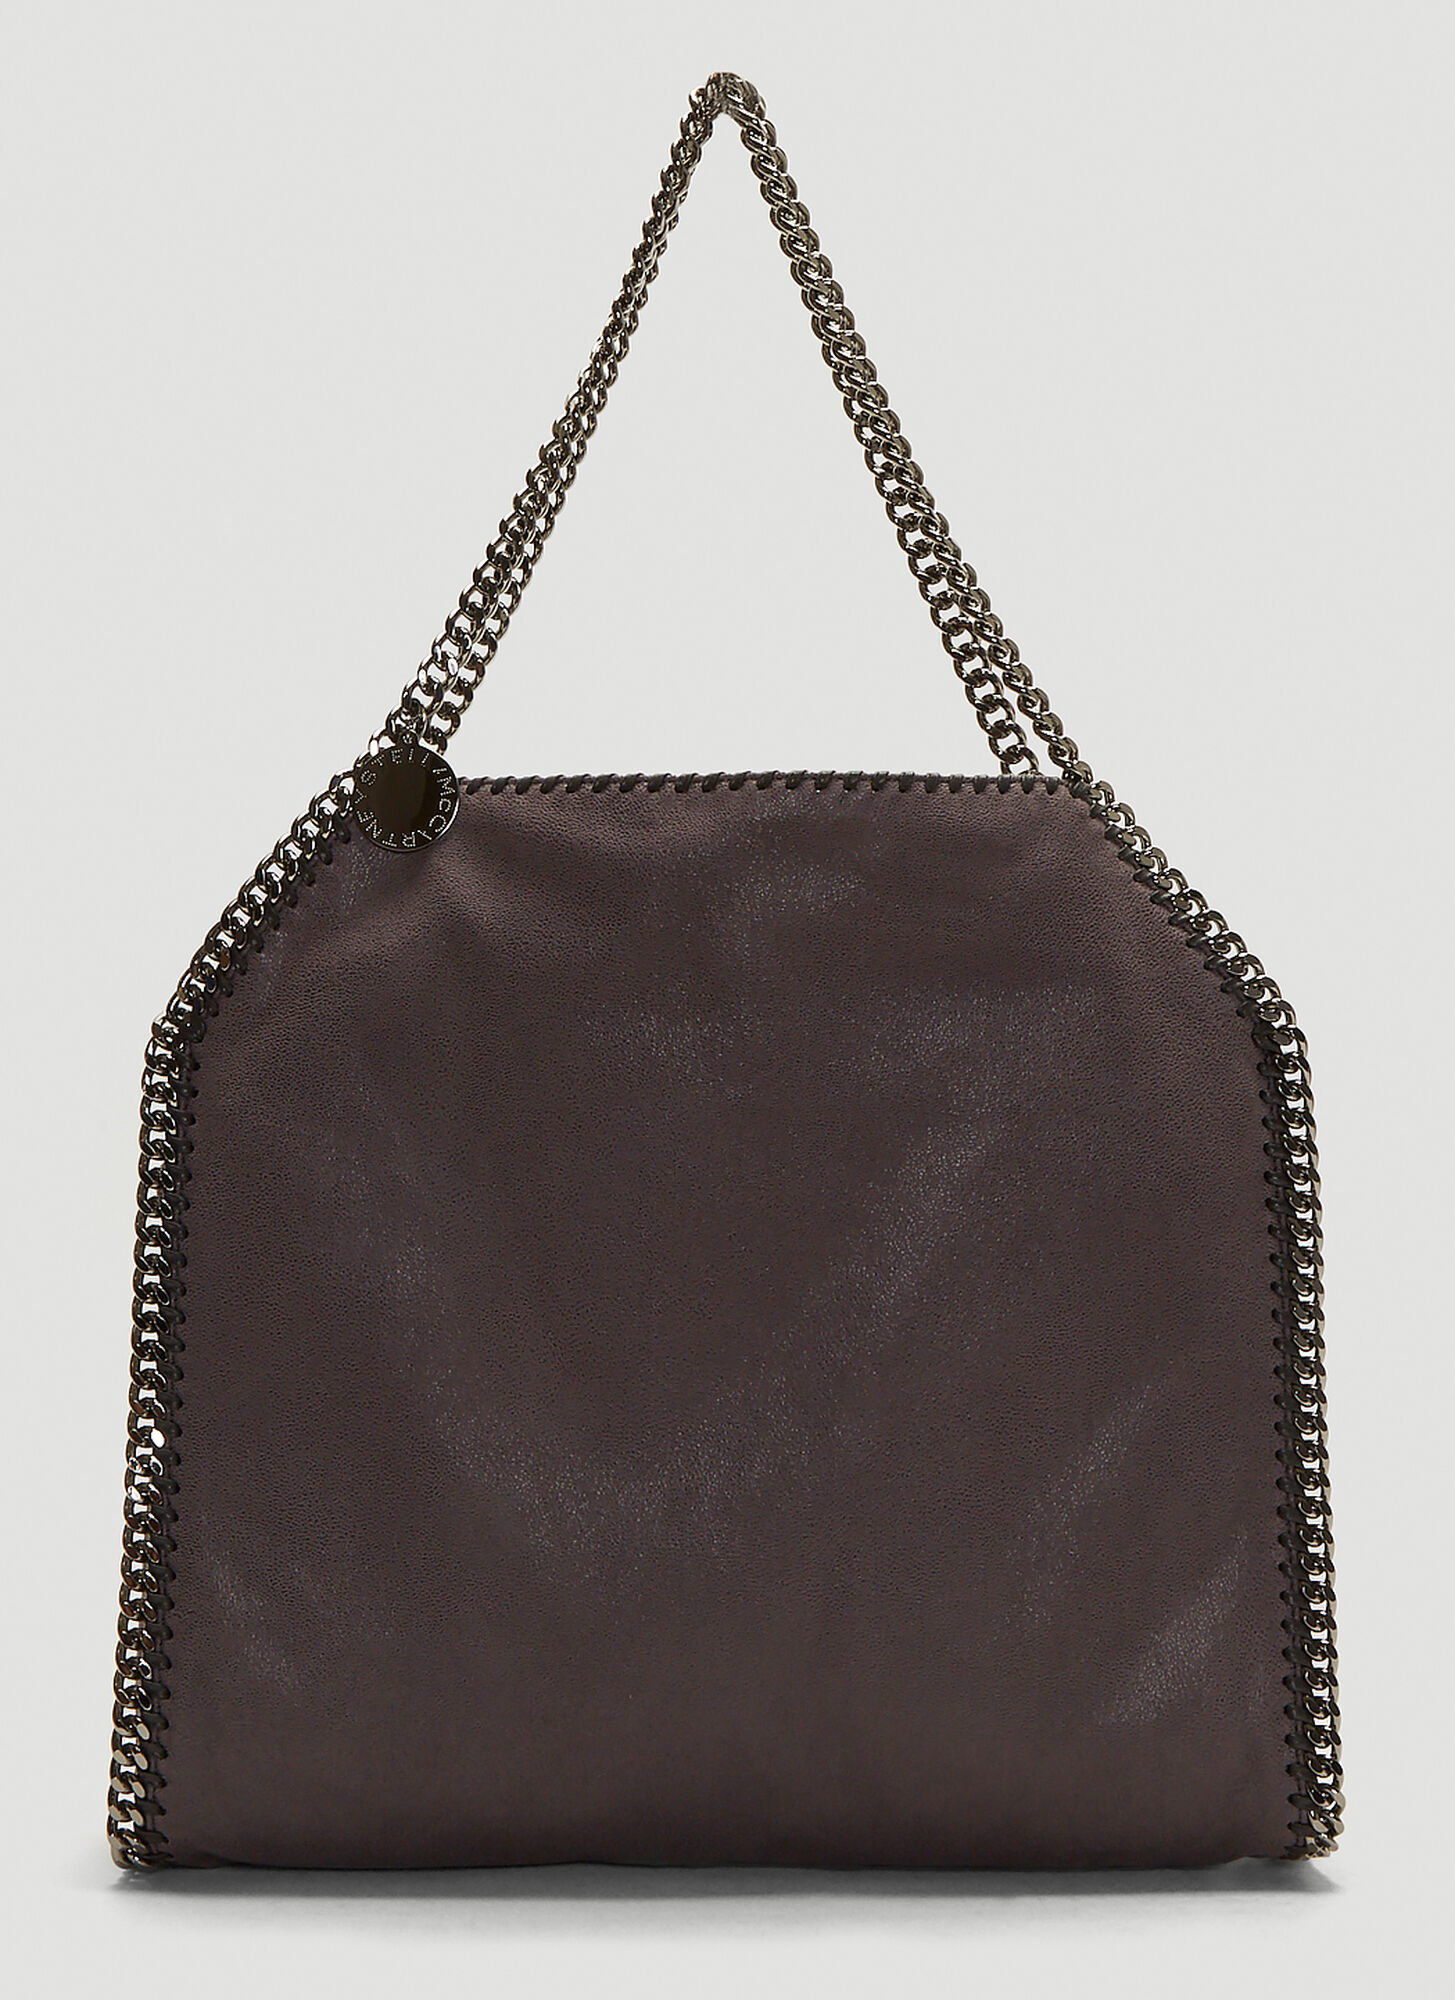 Stella McCartney Shaggy Deer Falabella Chain Bag in Grey